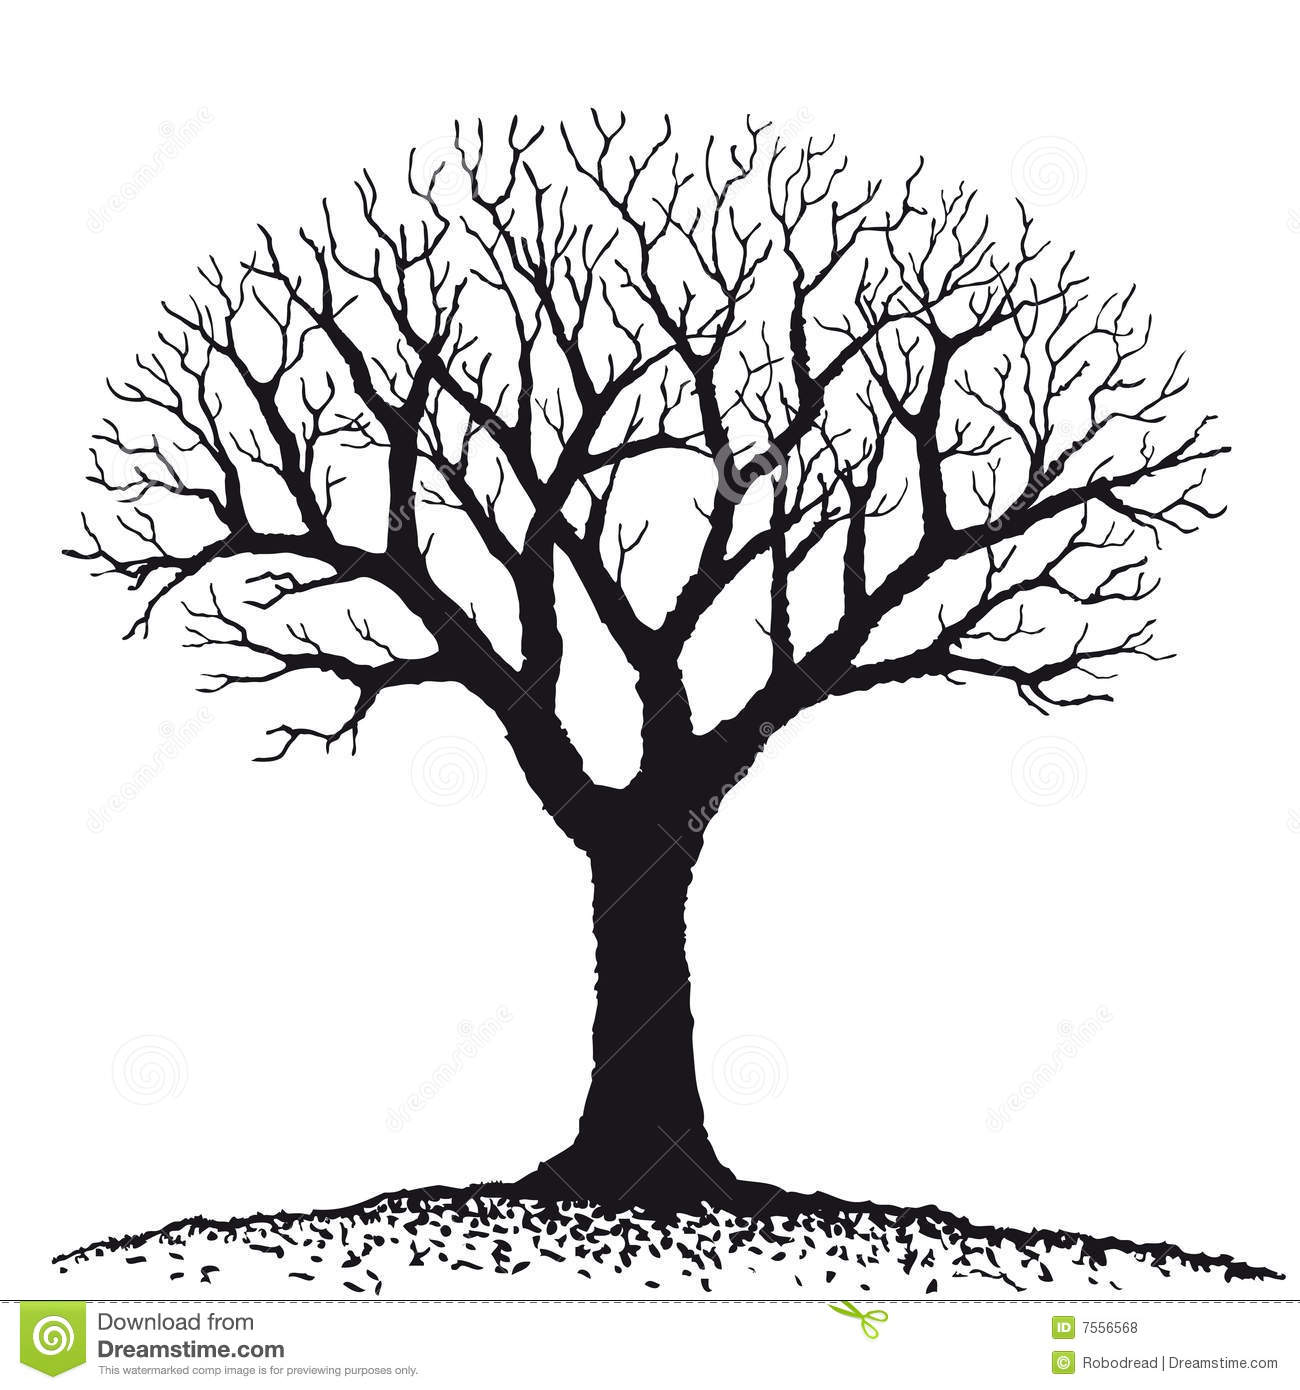 Bare Tree Clipart Bare Tree Clipart Bare Tree Clipart Bare